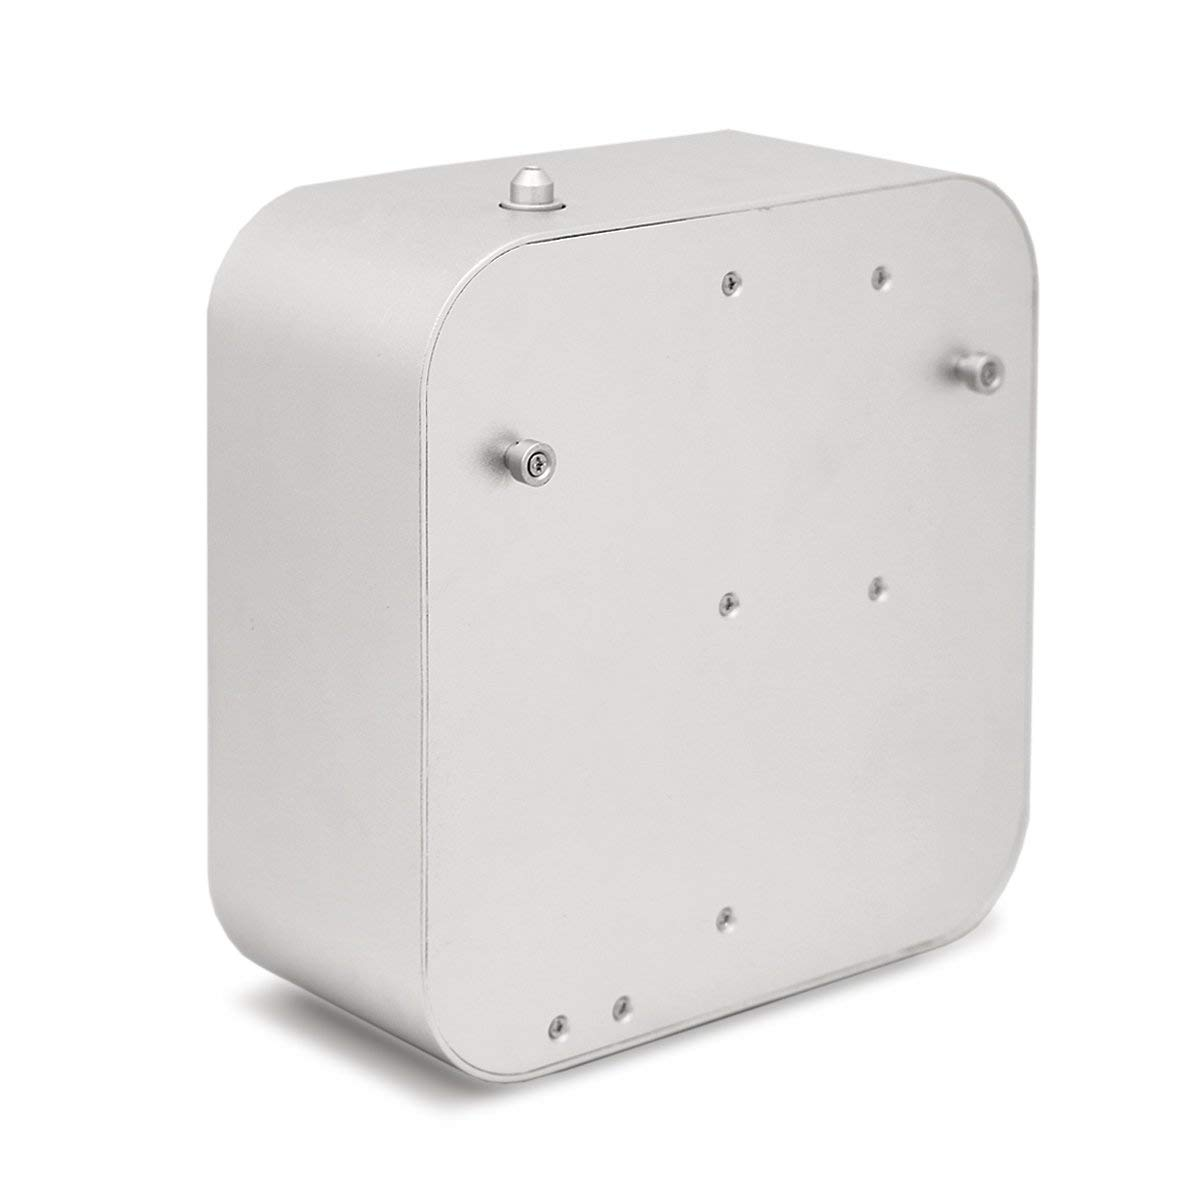 SB-1500 BT Scent Diffuser - White. by Scent Better (Image #2)